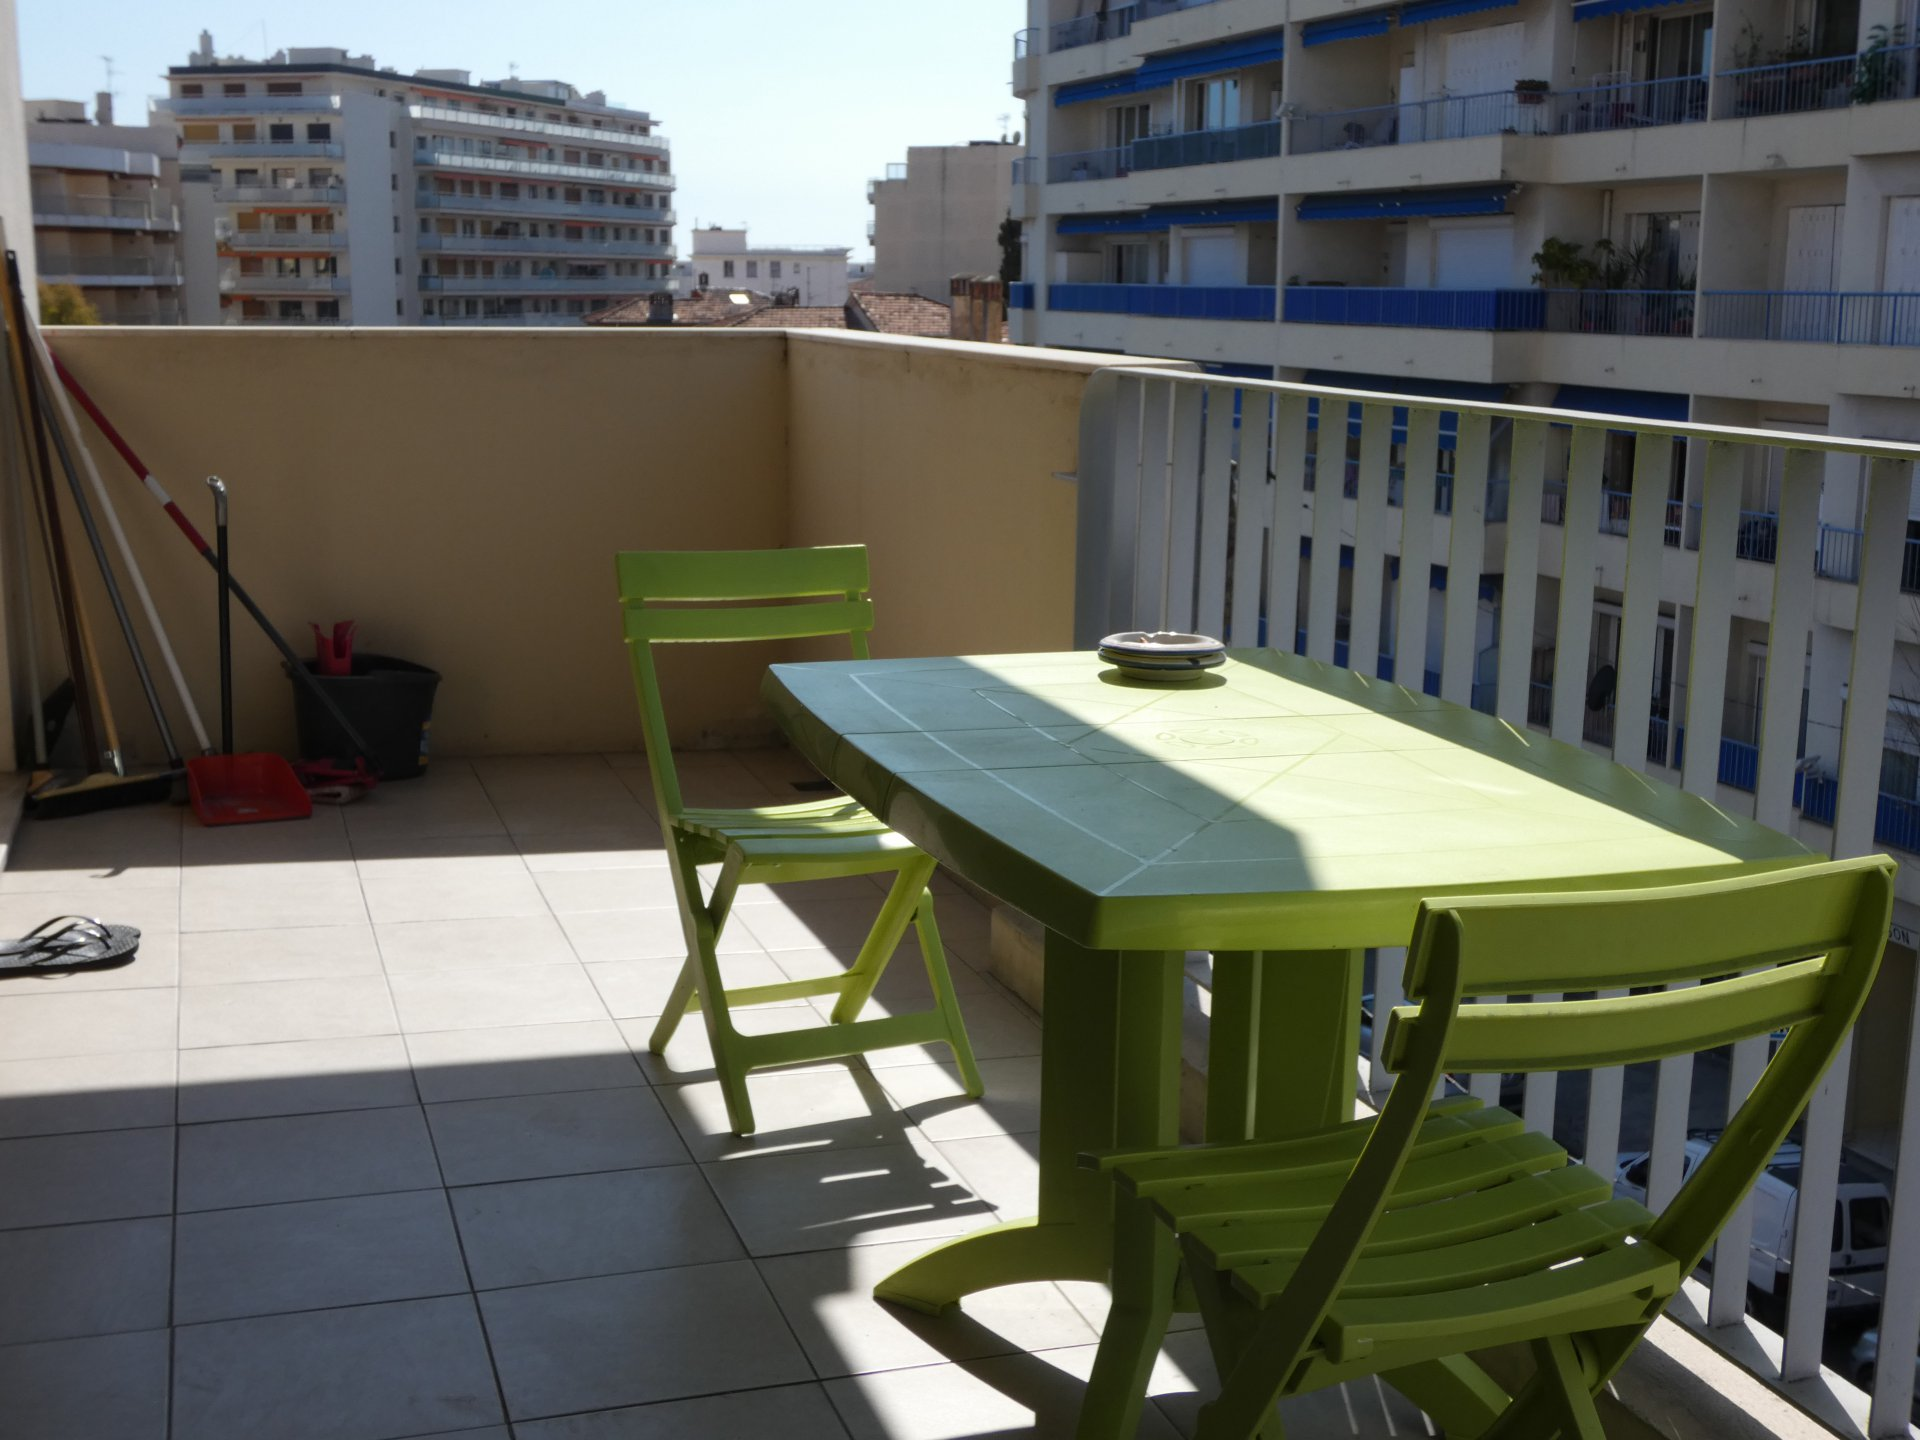 EXCLUSIVITE ! JUAN LES PINS CENTRE 2P 47M2 + TERRASSE 12M2 CAVE ET PARKING IDEAL PIED A TERRE